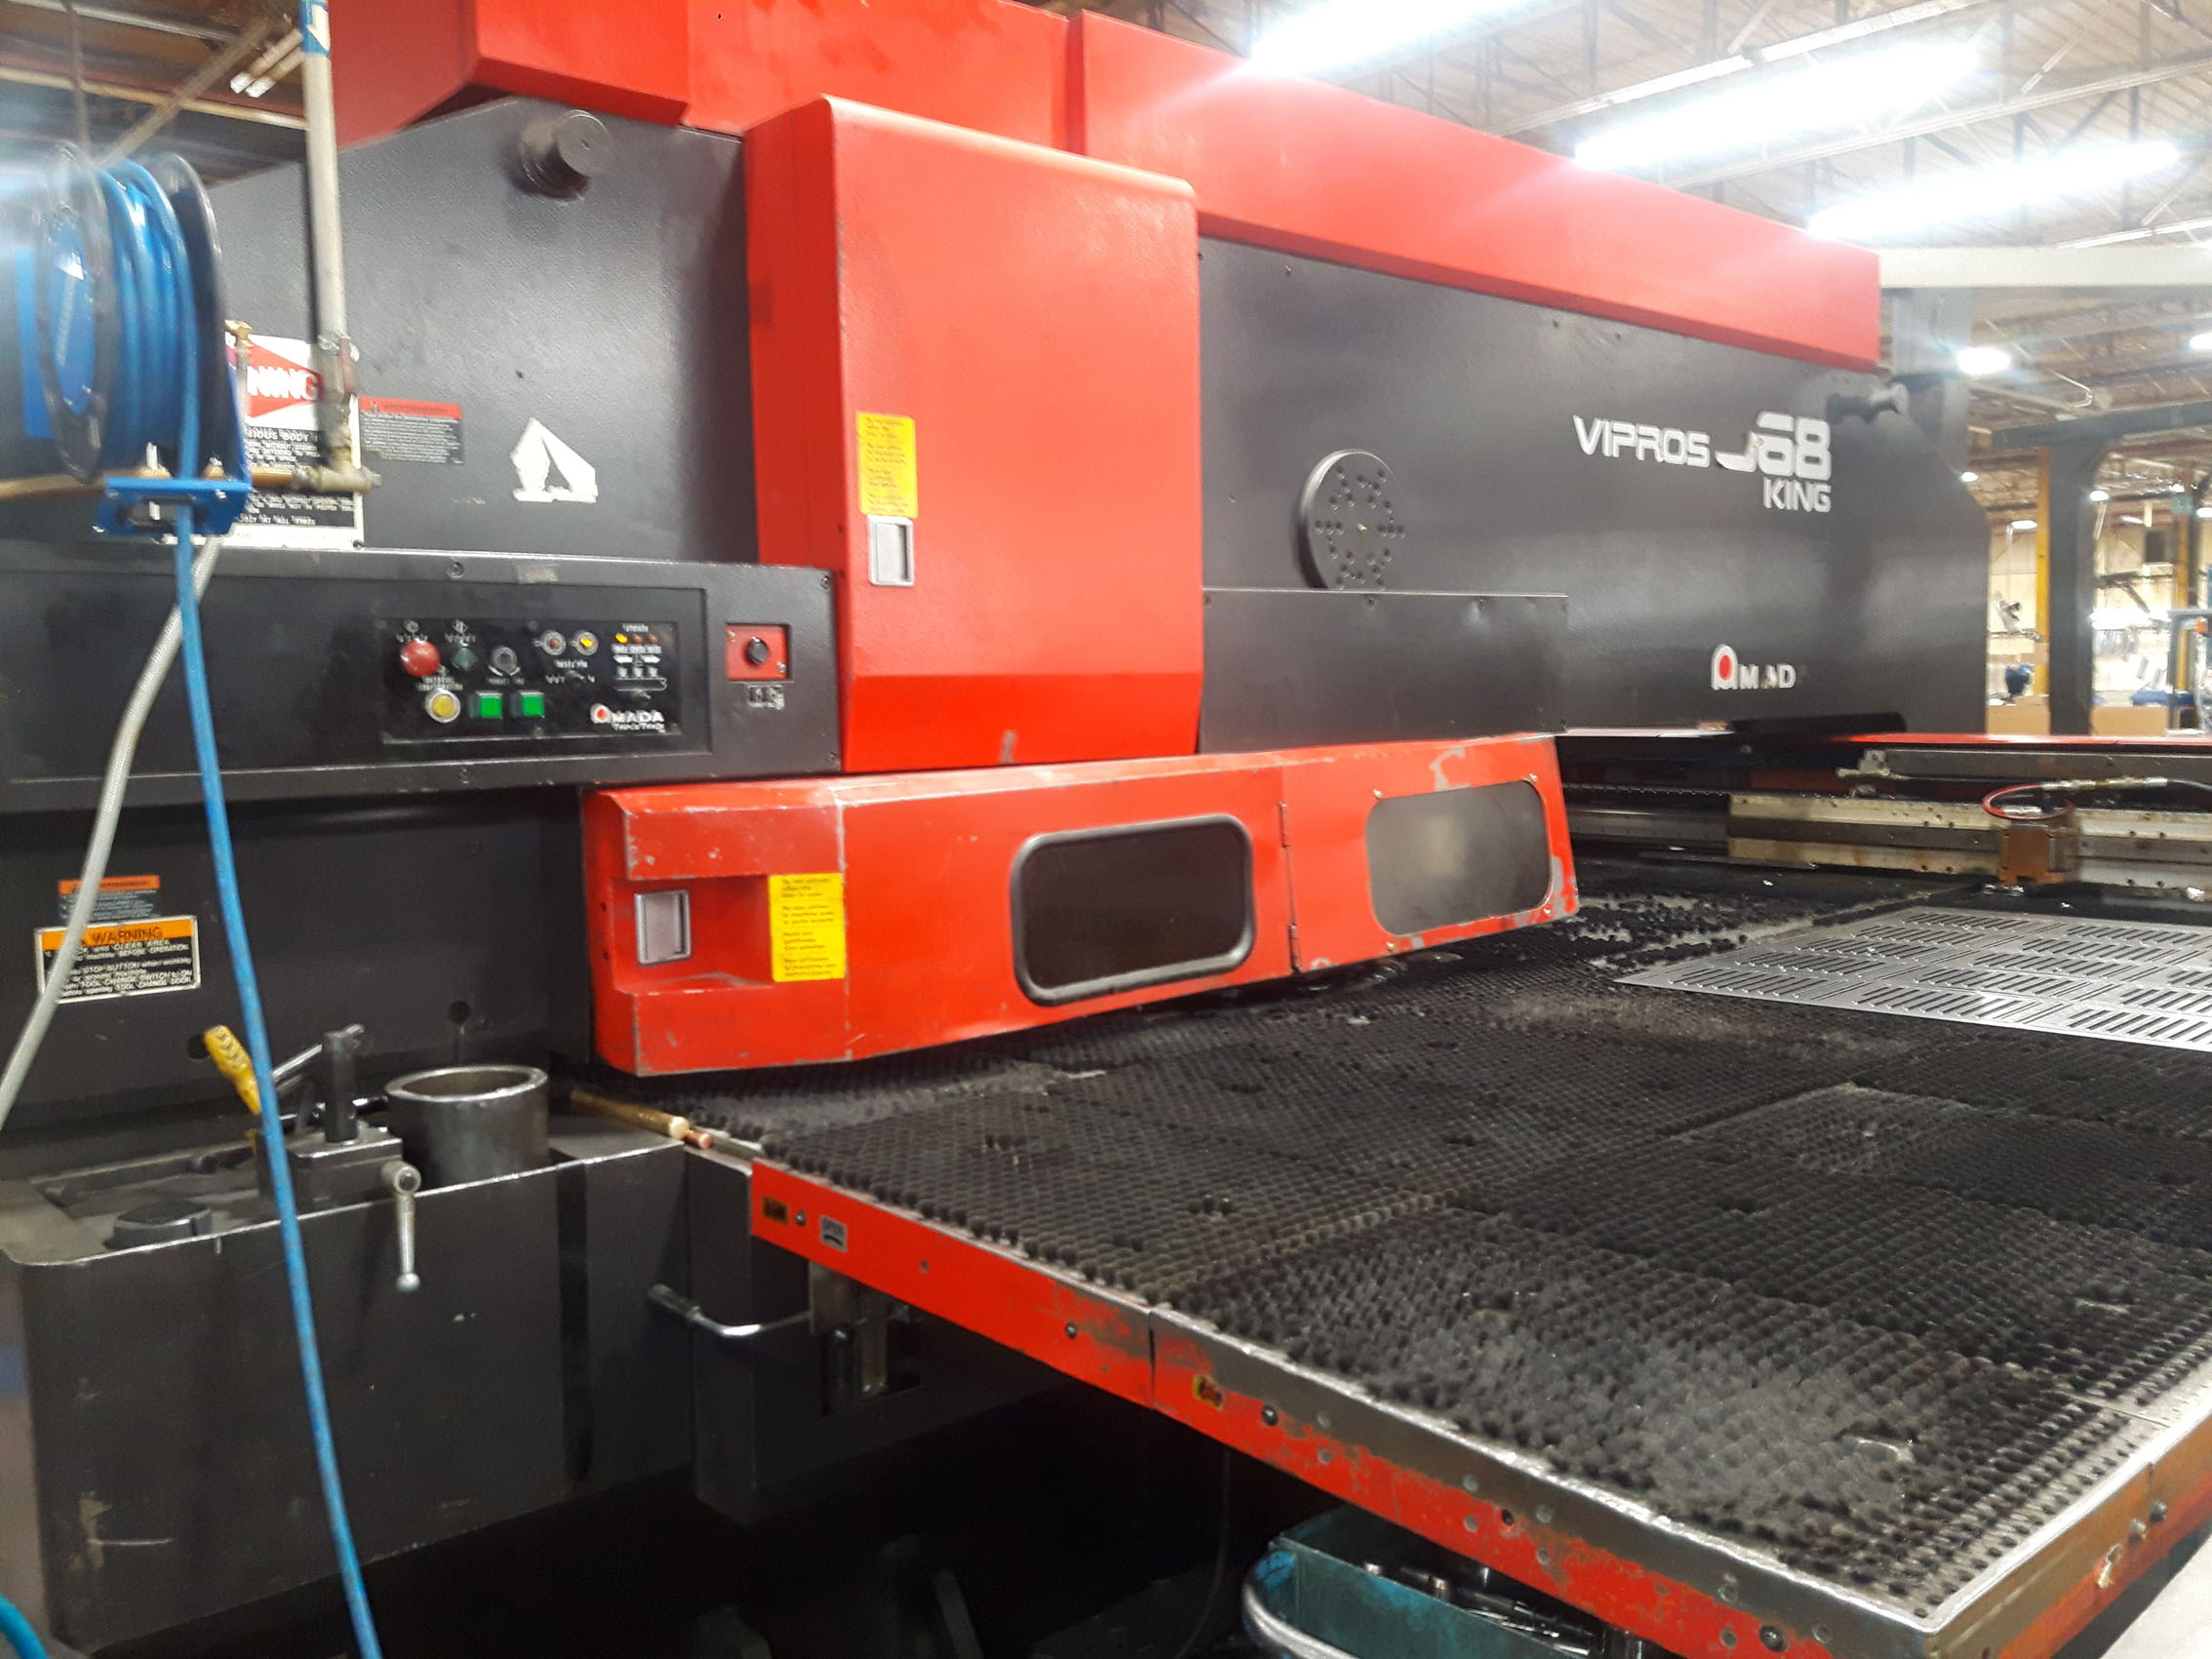 Lot 16 - AMADA VIPROS 30 TON CNC TURRET PUNCH MOD. VIPROS 368 KING, S/N: 36820056 (LOCATED IN POINTE-